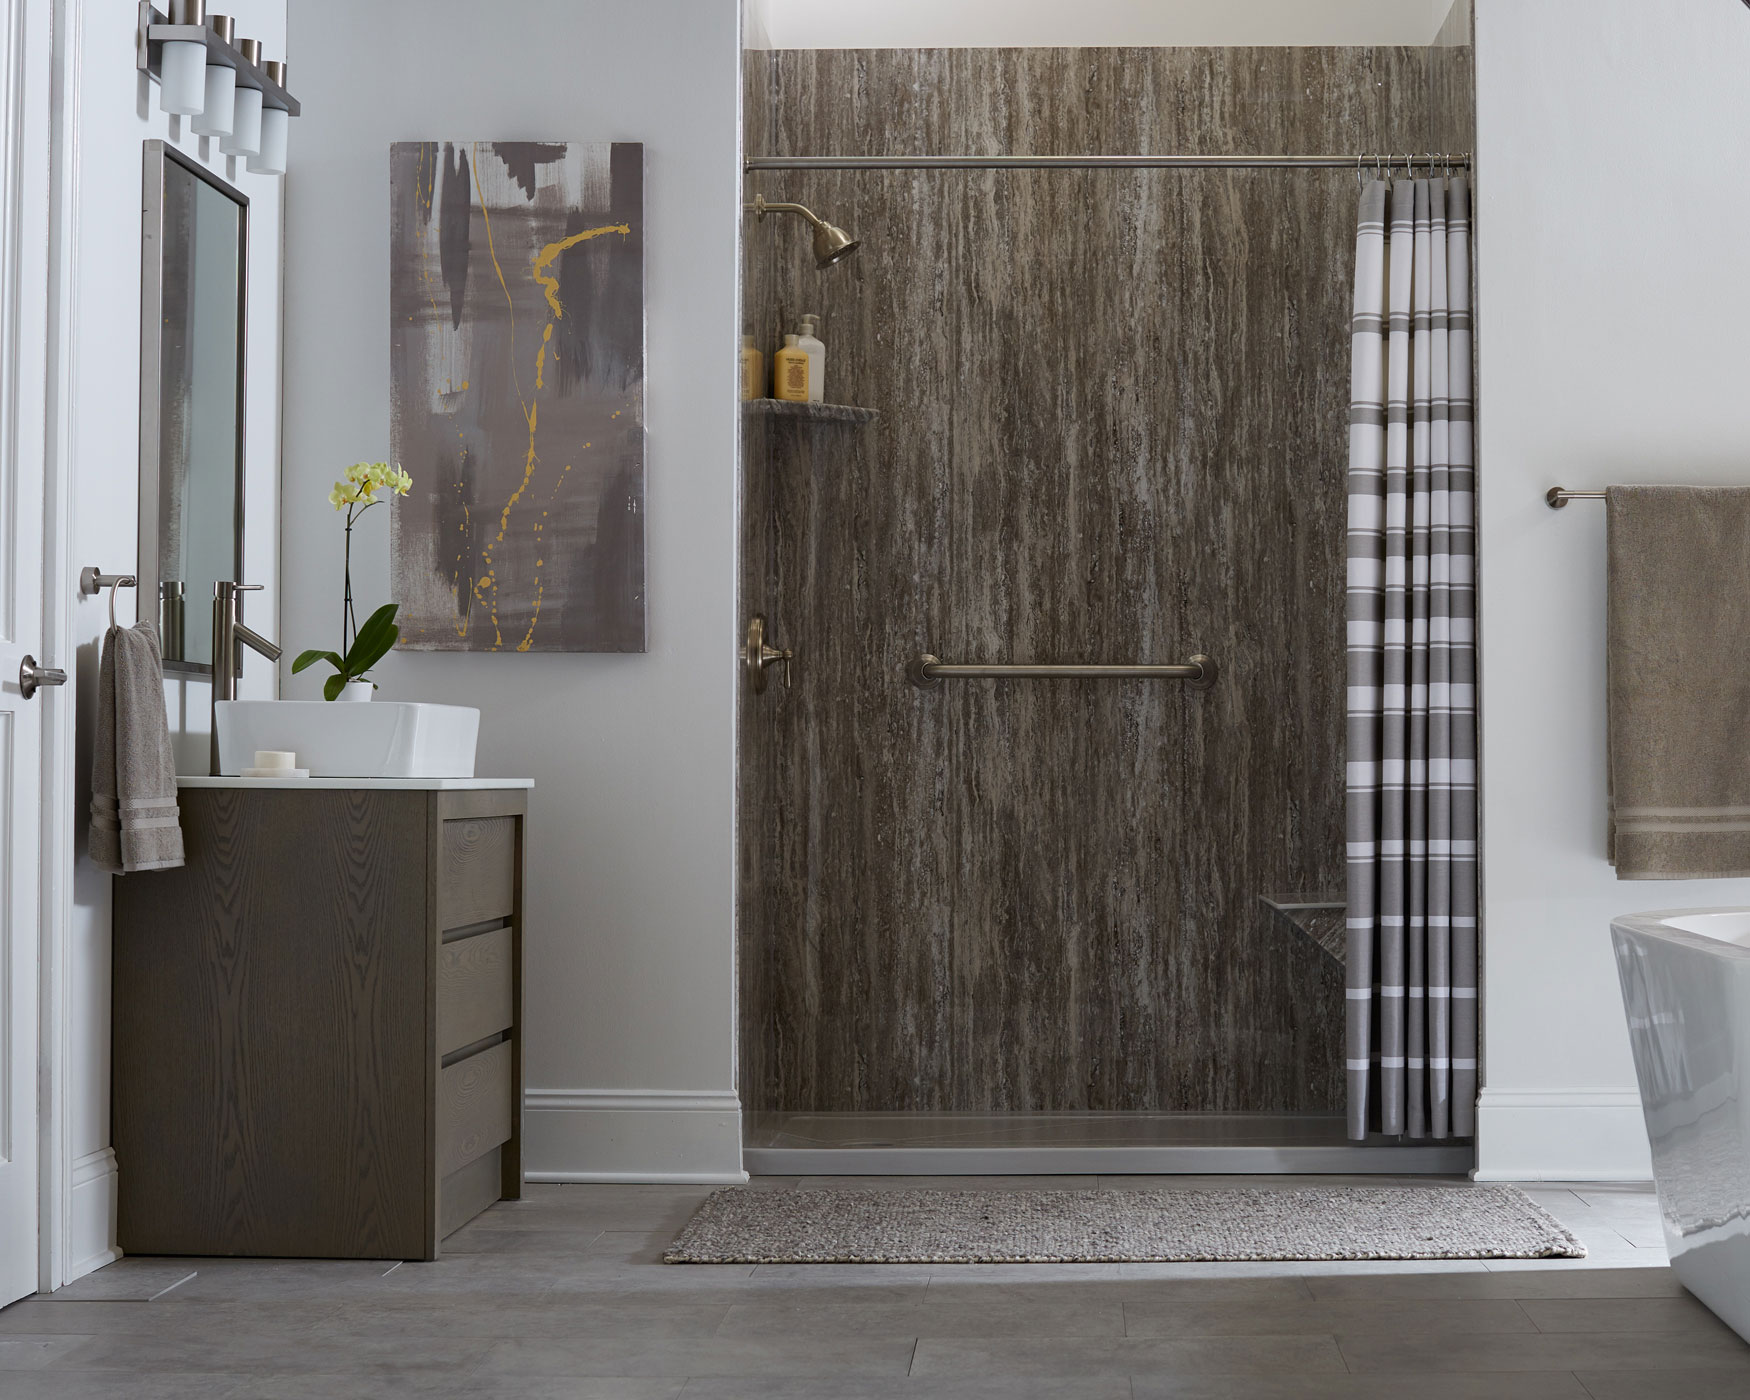 Can a Bathroom Really Be Remodeled in One Day?